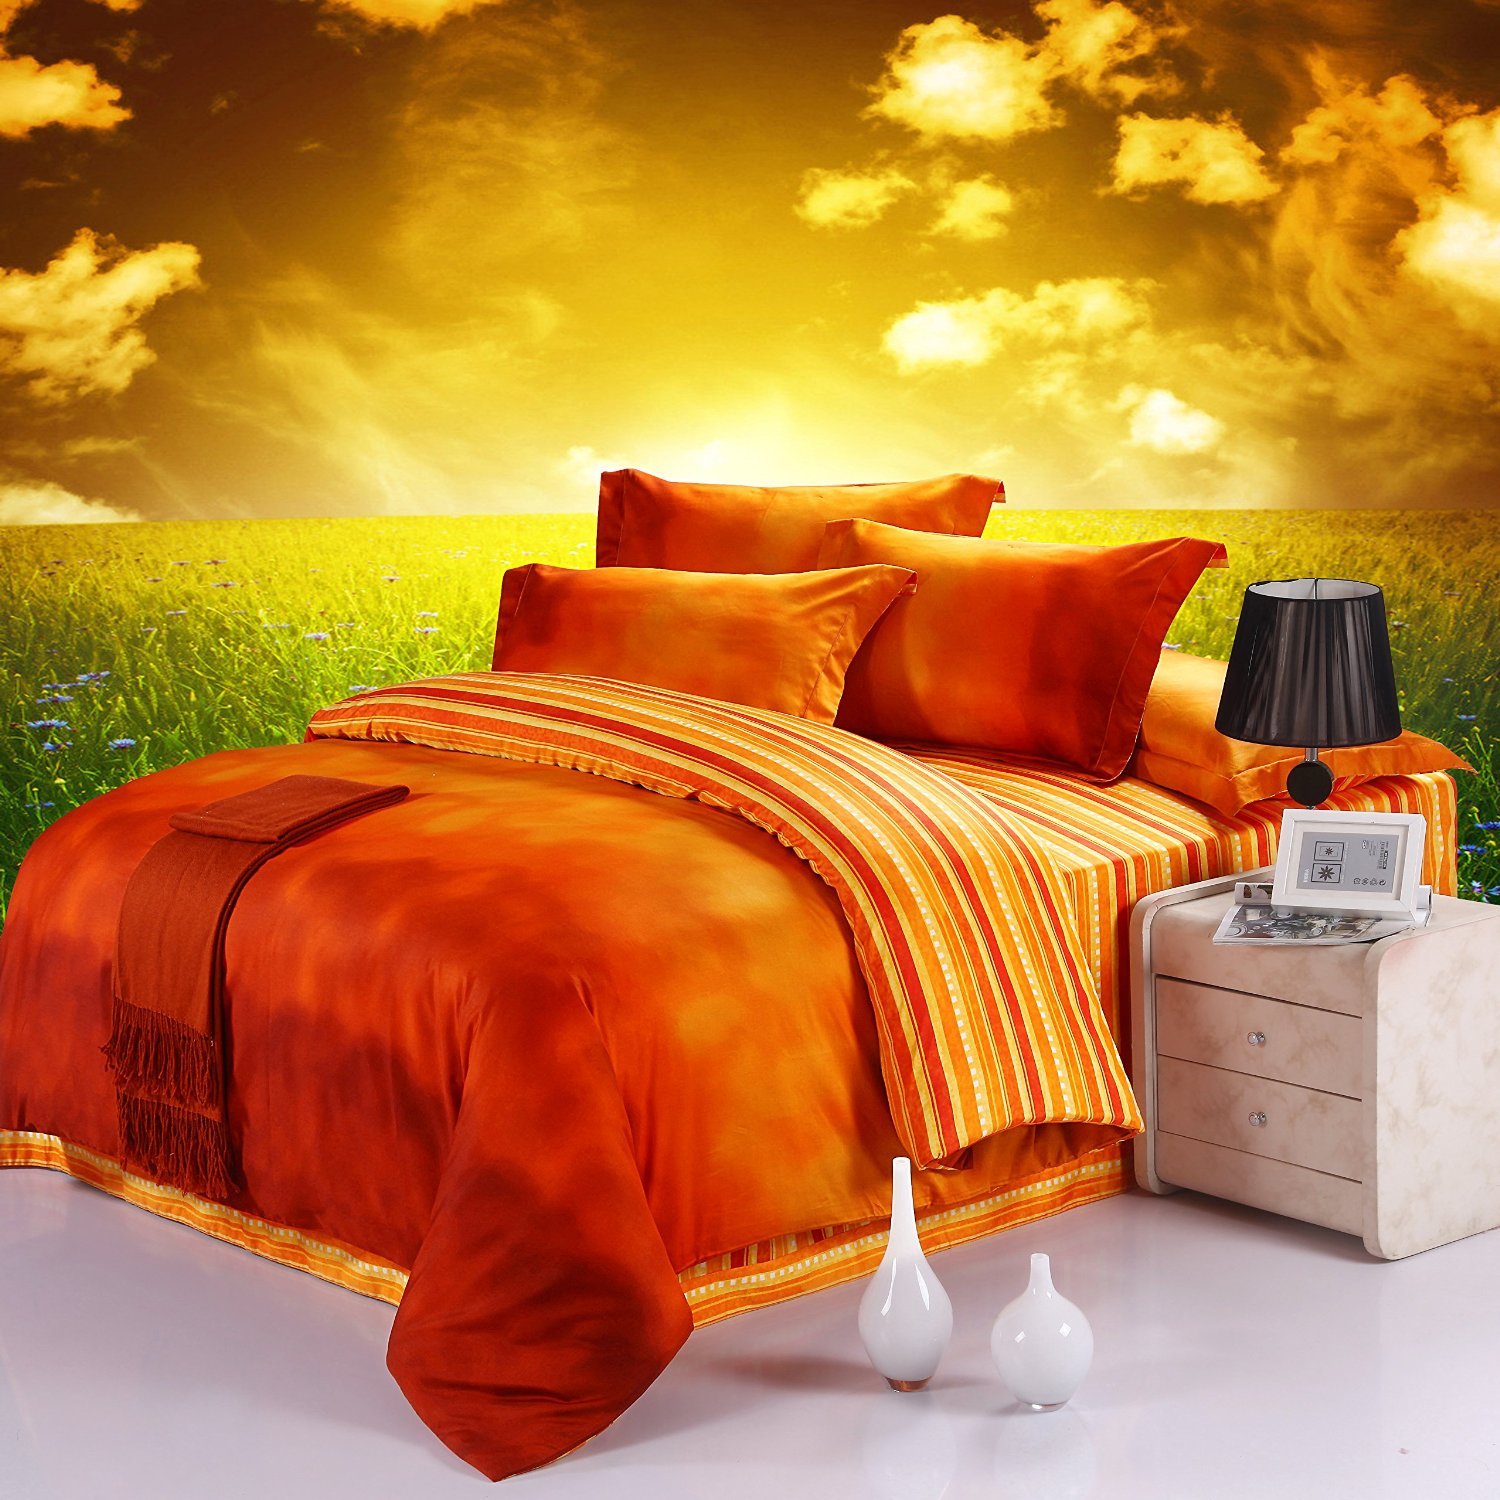 10 fun bright orange comforters and bedding sets. Black Bedroom Furniture Sets. Home Design Ideas